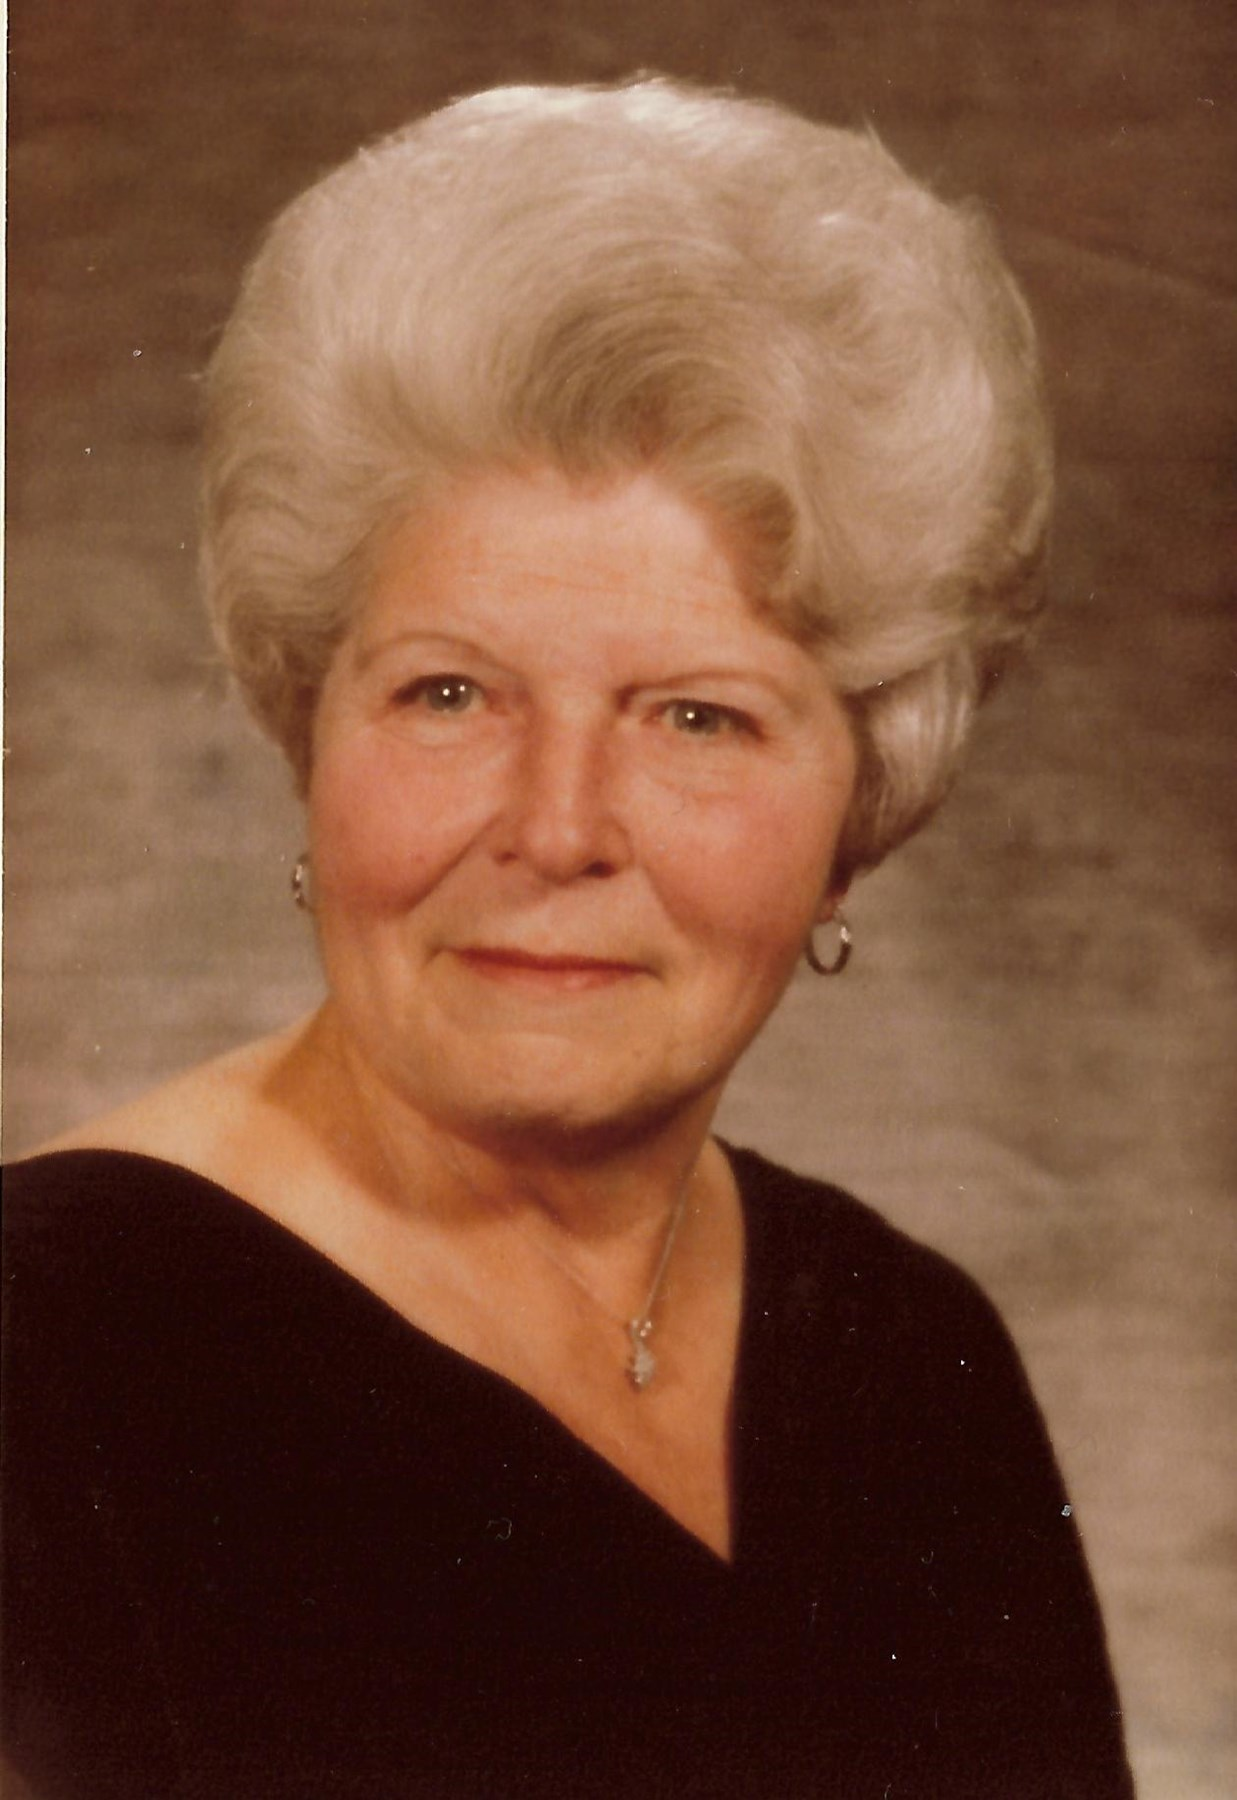 Forum on this topic: Obituary Day, obituary-day/